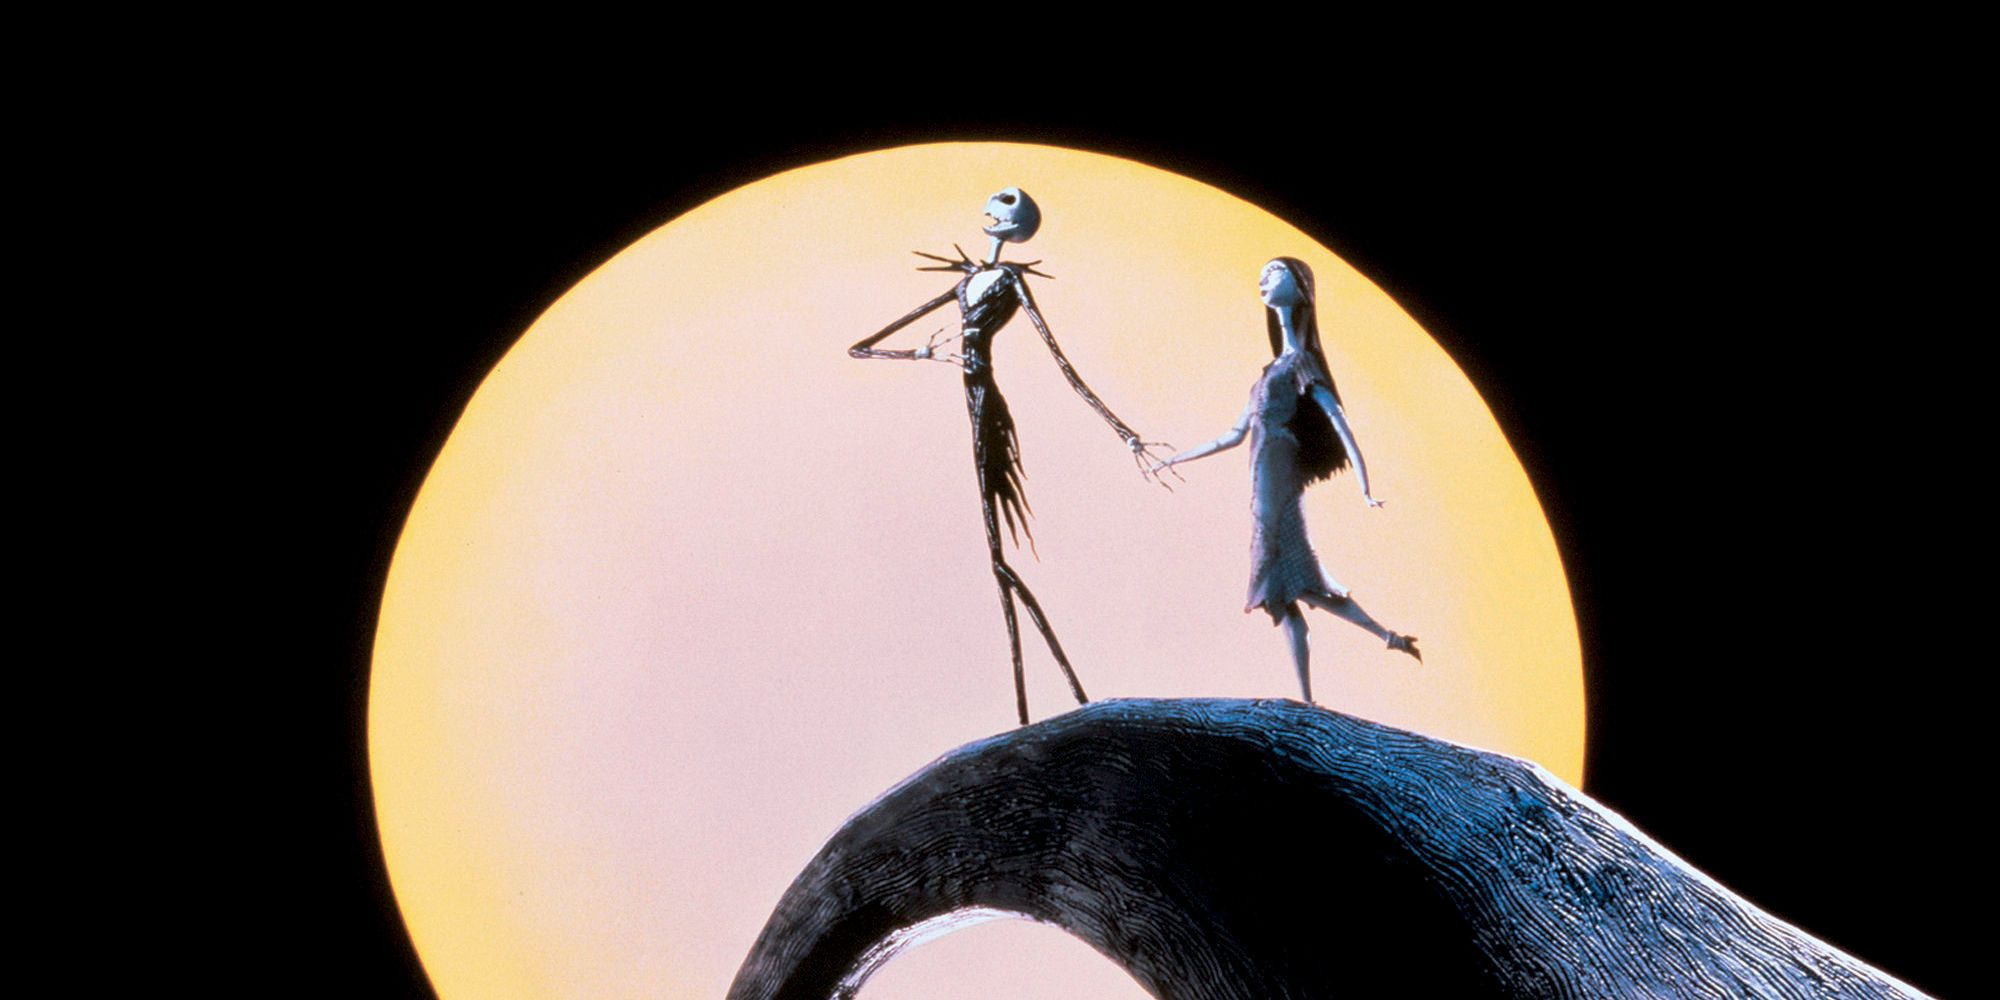 Nightmare Before Christmas & Hocus Pocus Returning to Theaters